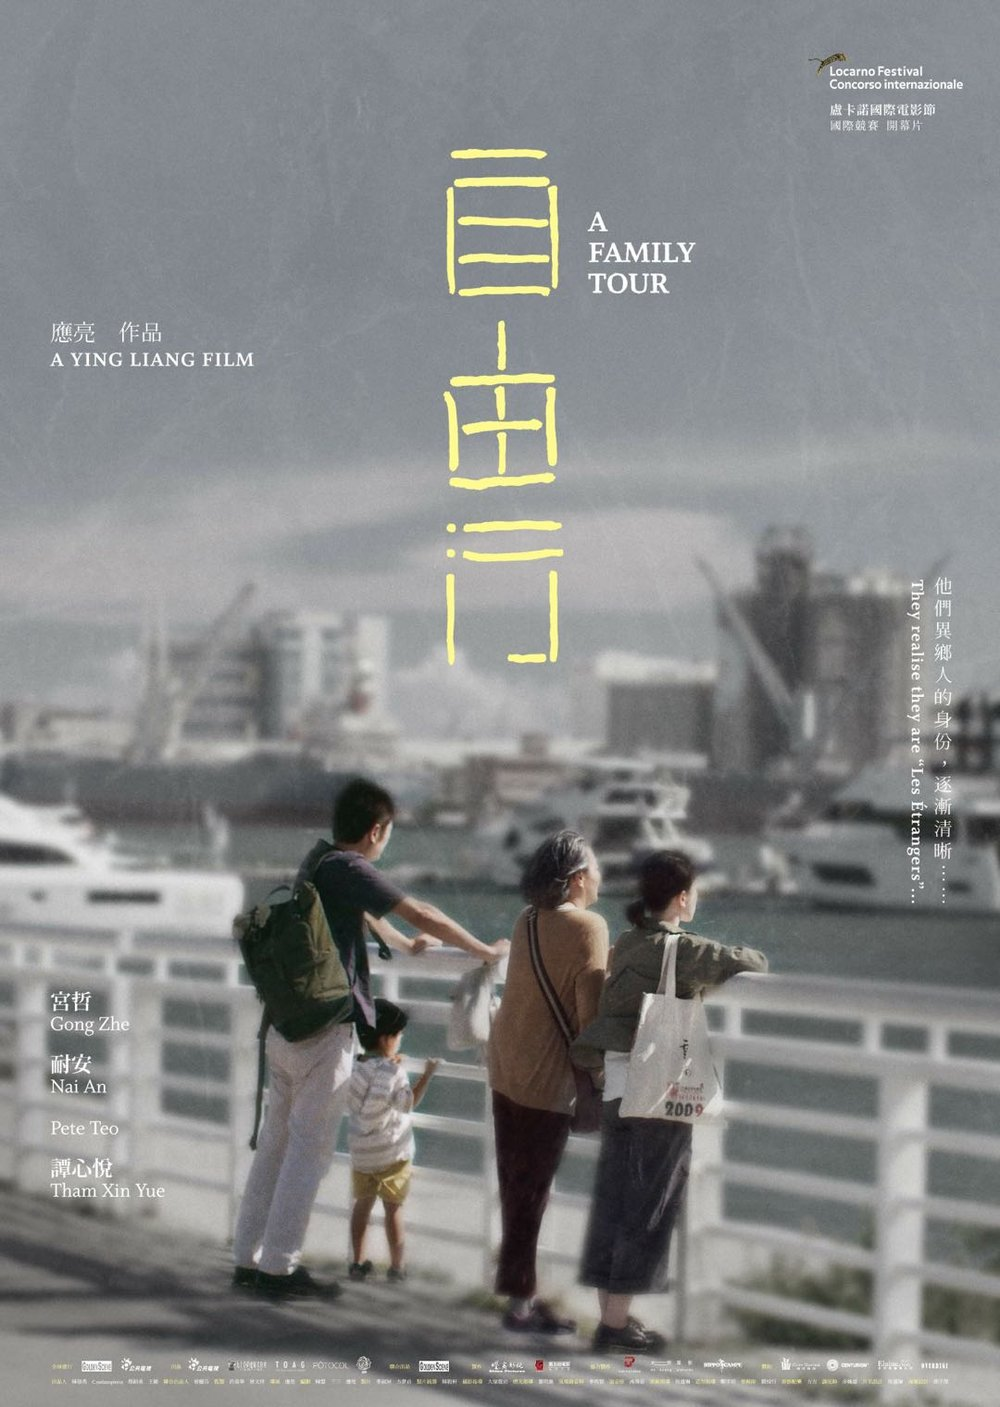 - A FAMILY TOUR, 2018 (Taiwan, Hong Kong)One family, three lands. An exiled Chinese film-maker arranges to meet her mother on a travel tour in Taiwan after years of separation. Persecution, family bonds, hopes and fears all blend into a bittersweet trip to remember, as the film explores the complex relationship between China and Hong Kong.Director: Ying LiangLength: 1h 47minWhere and when: Genesis Cinema, Saturday 1 December 3.30pm